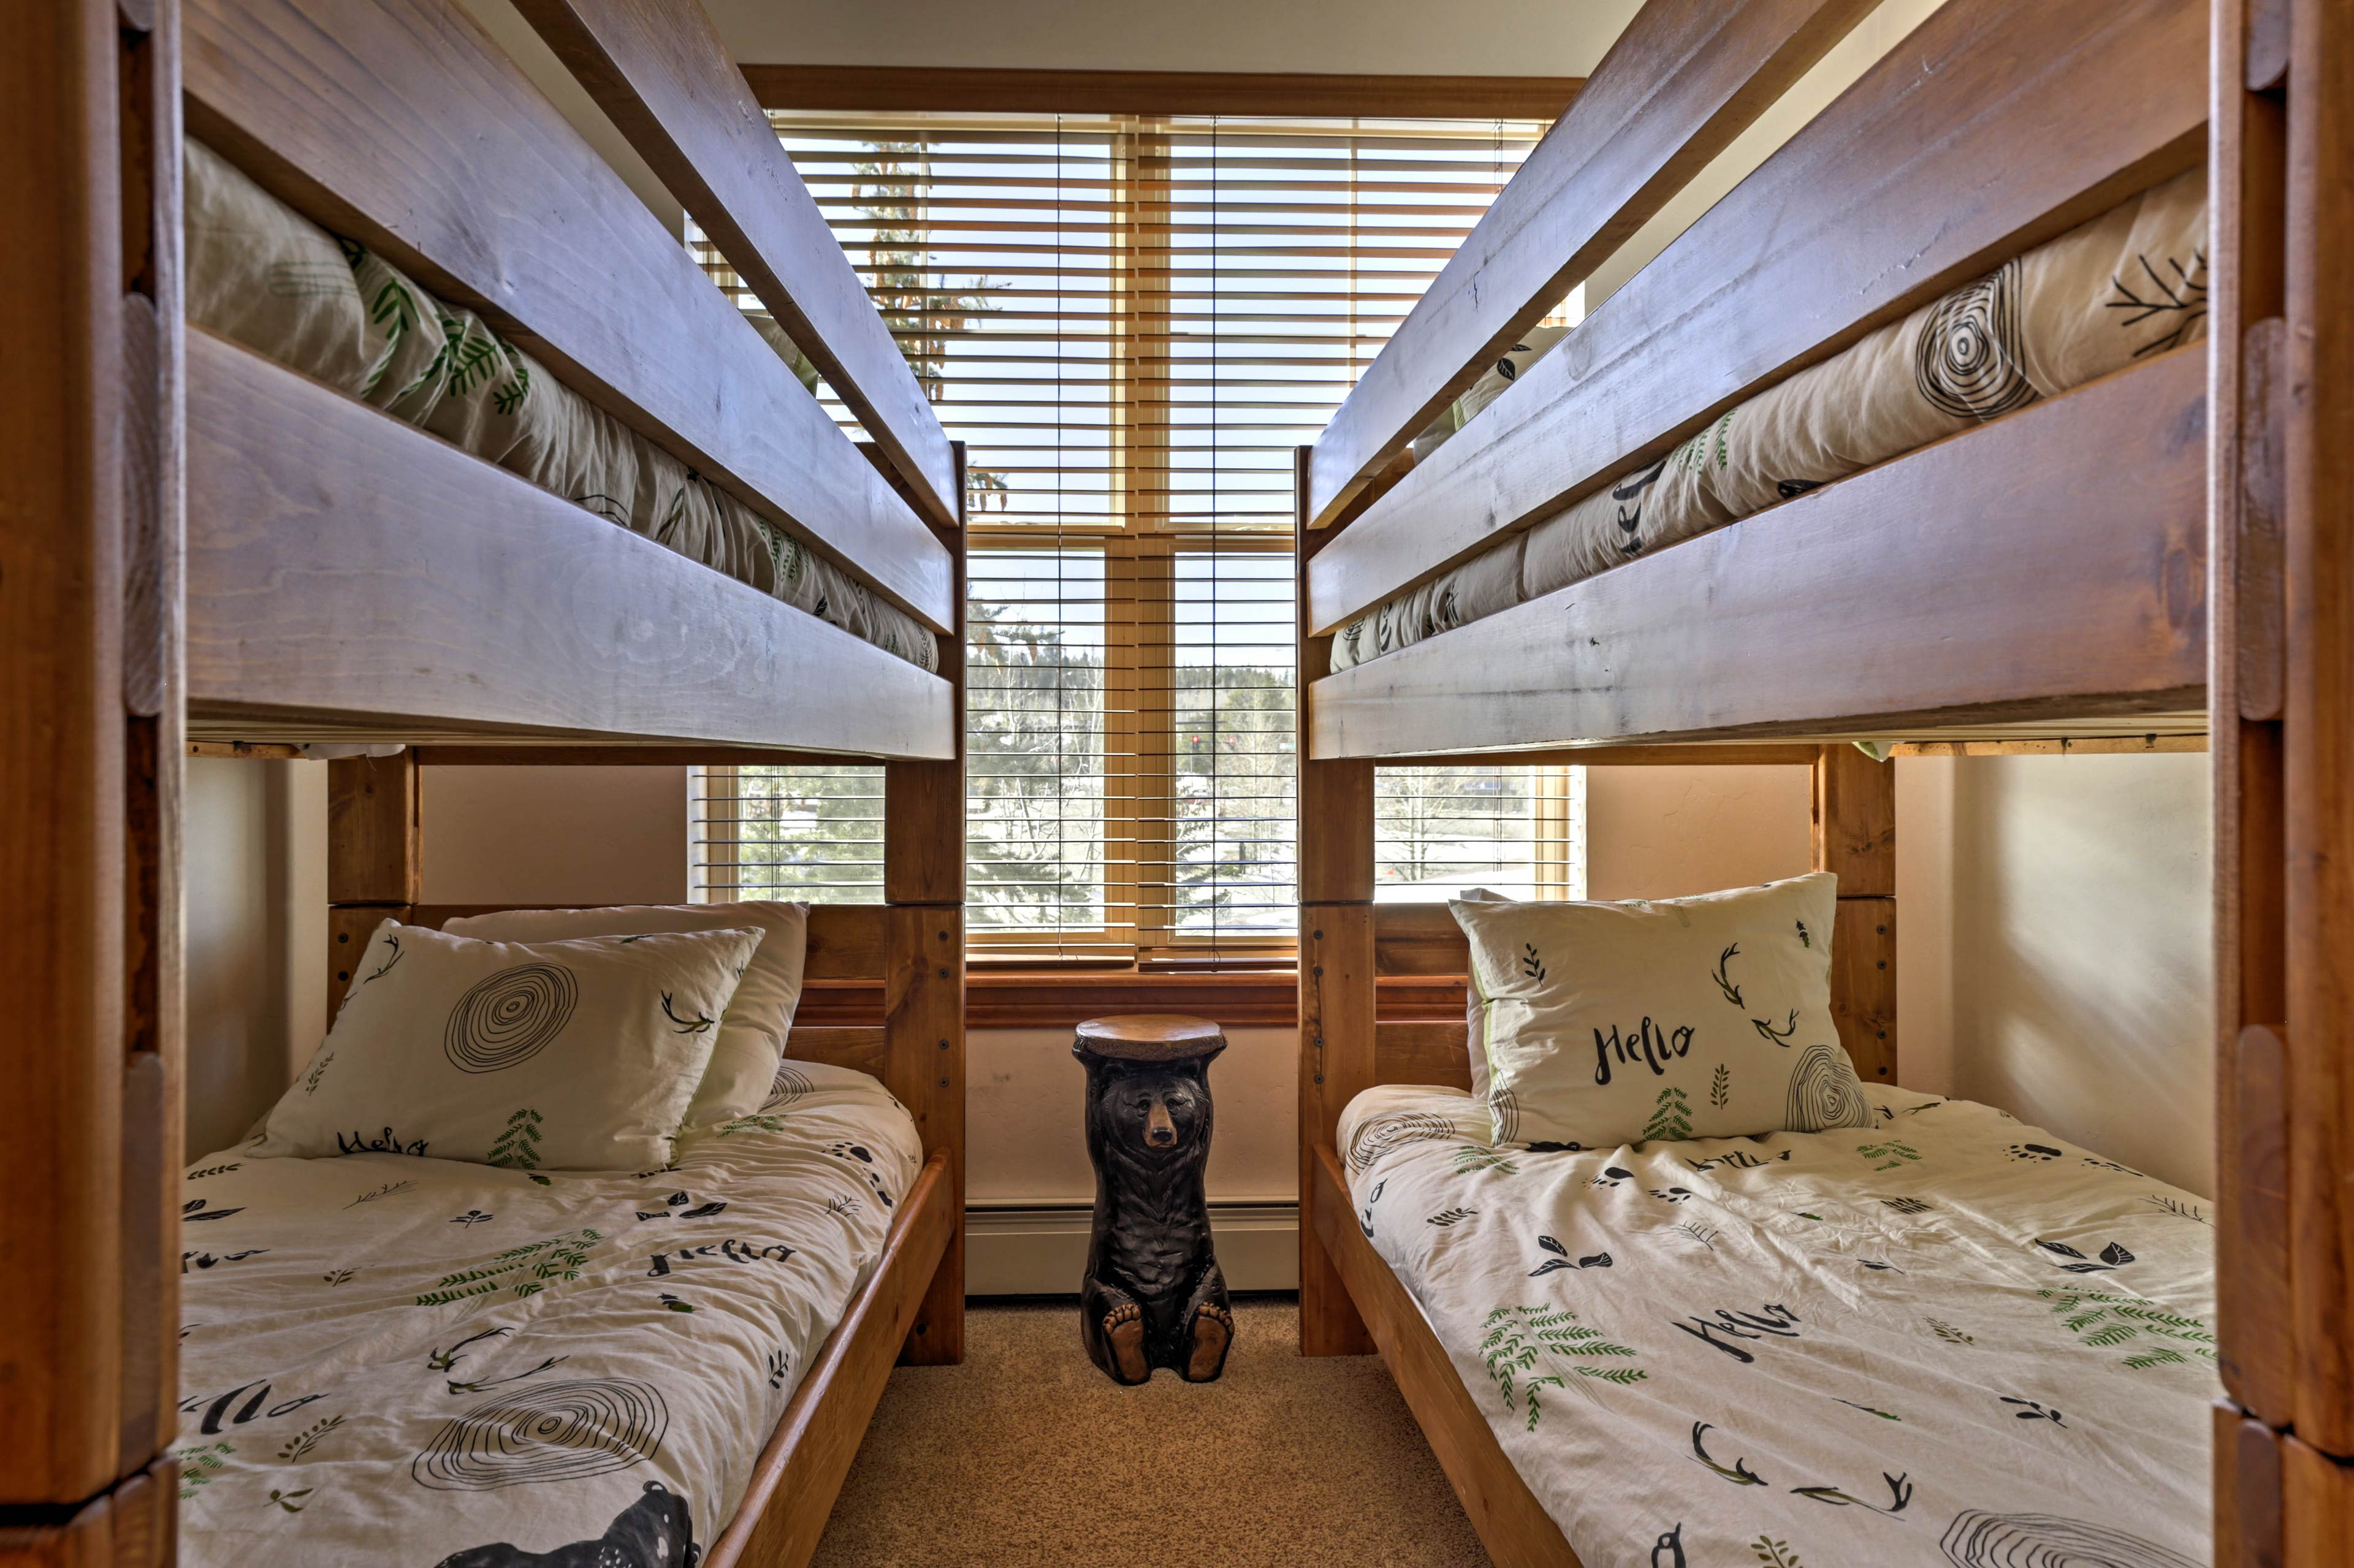 Up to 4 can sleep in this bedroom.